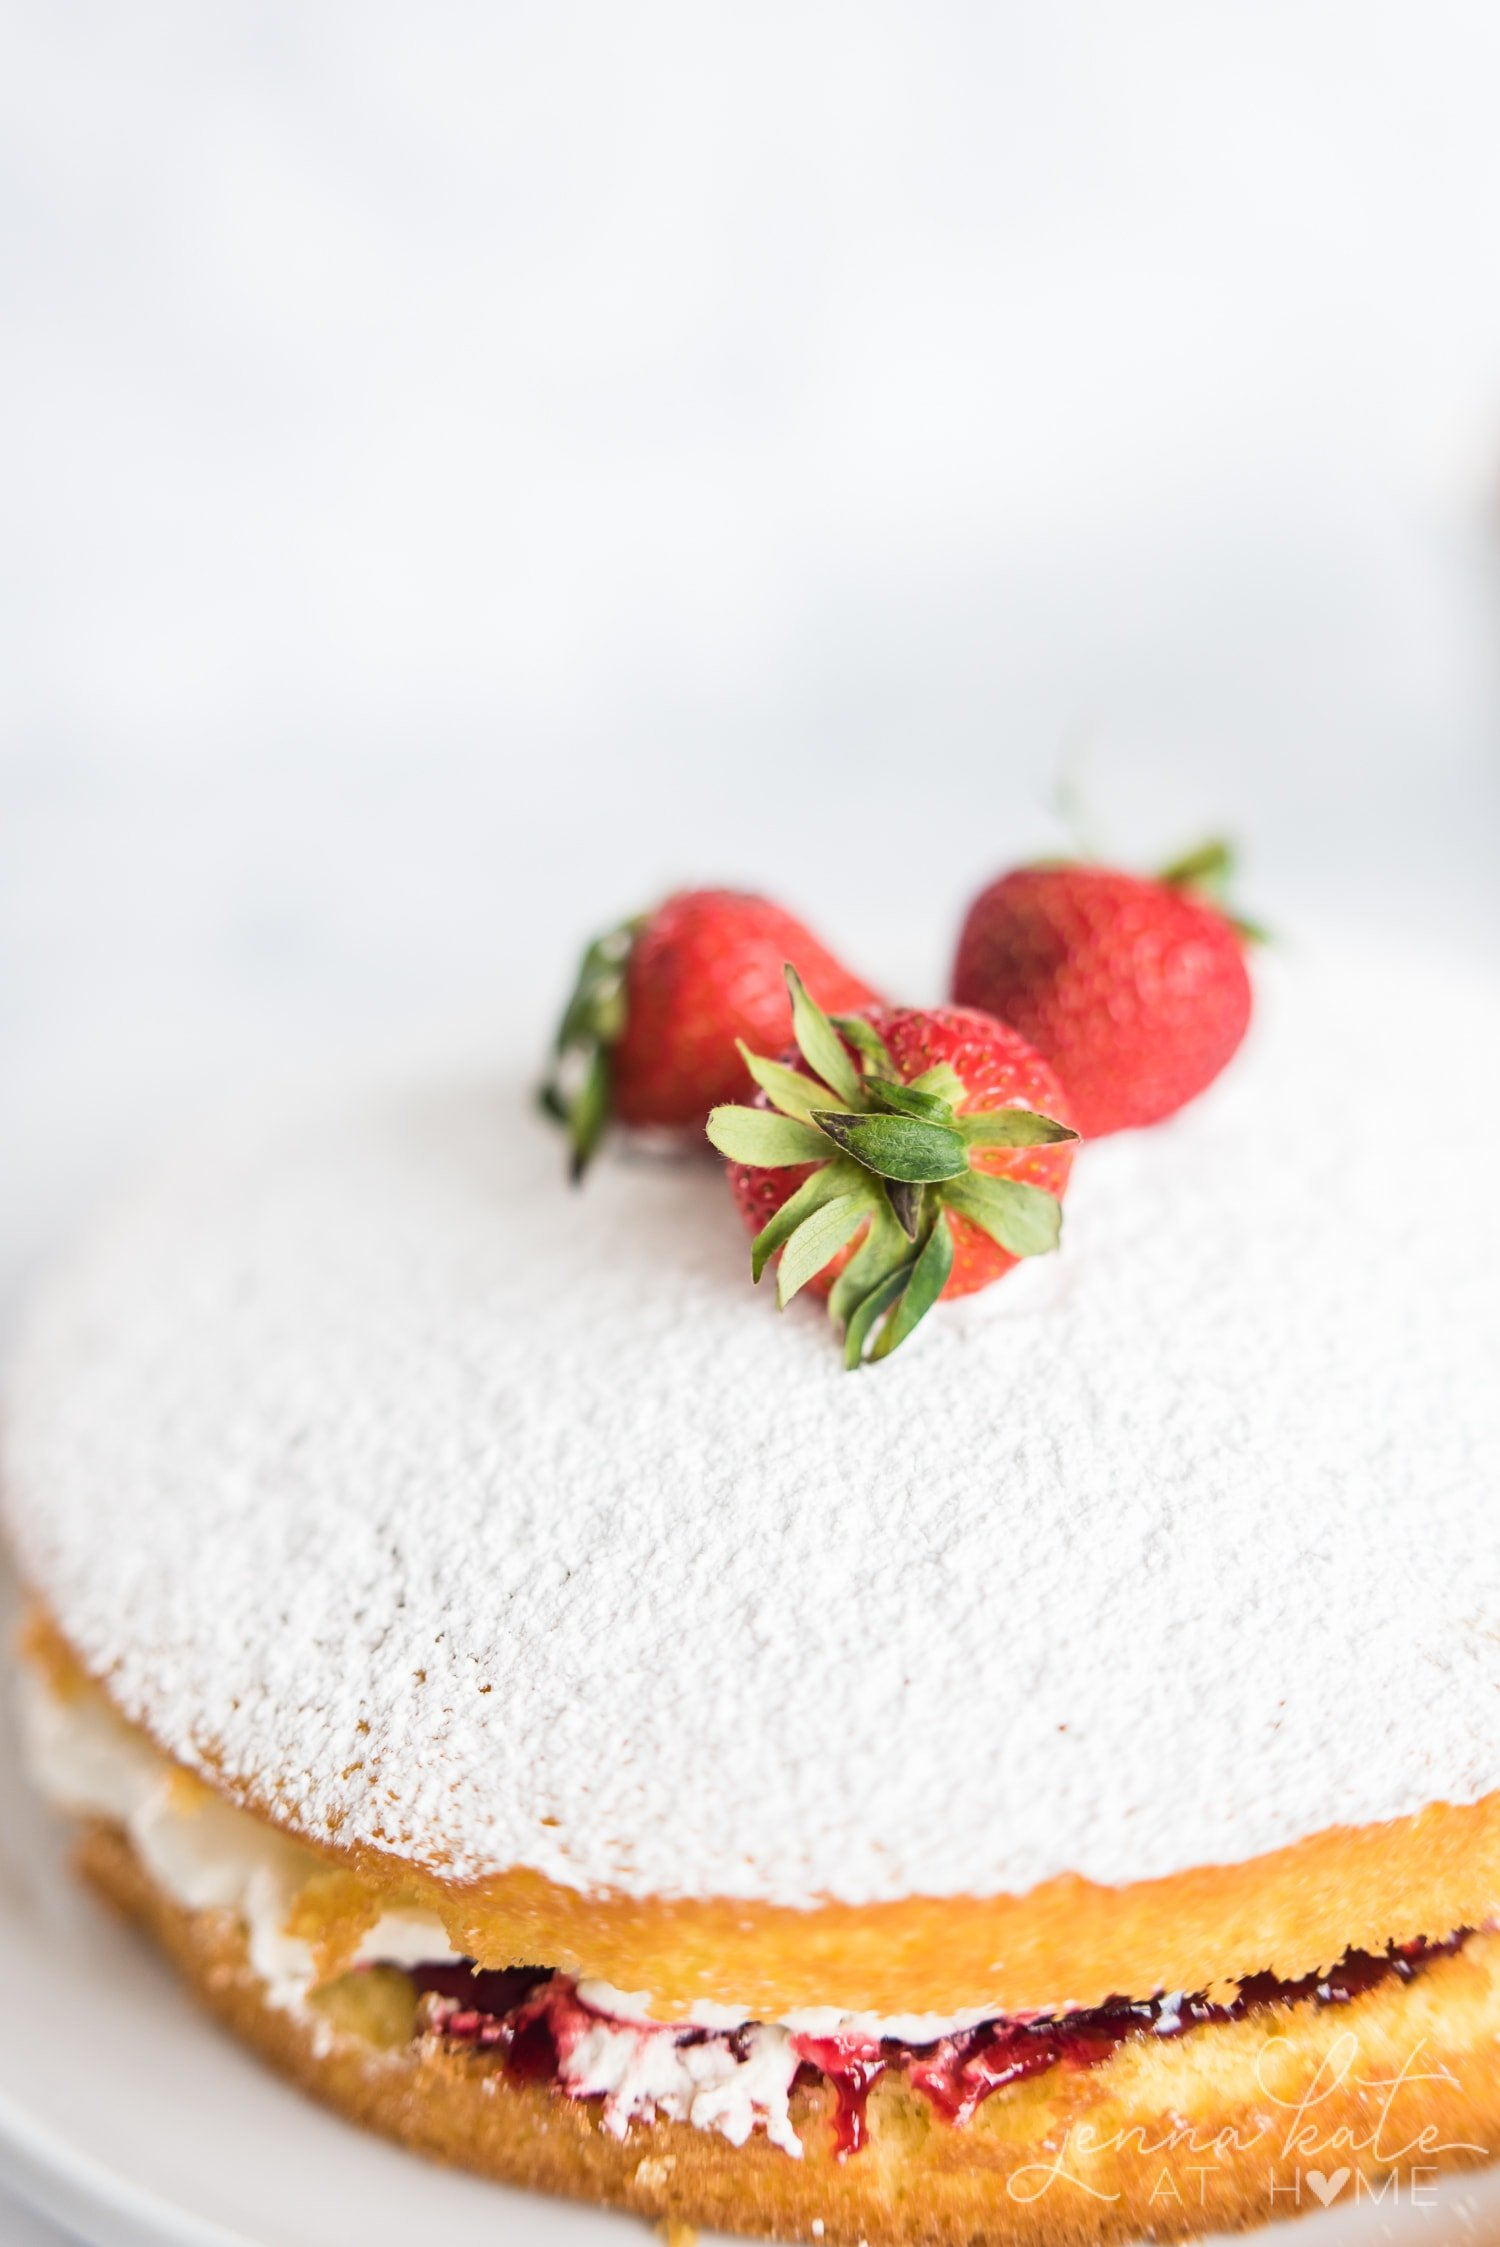 Close up of strawberries on top of the cake